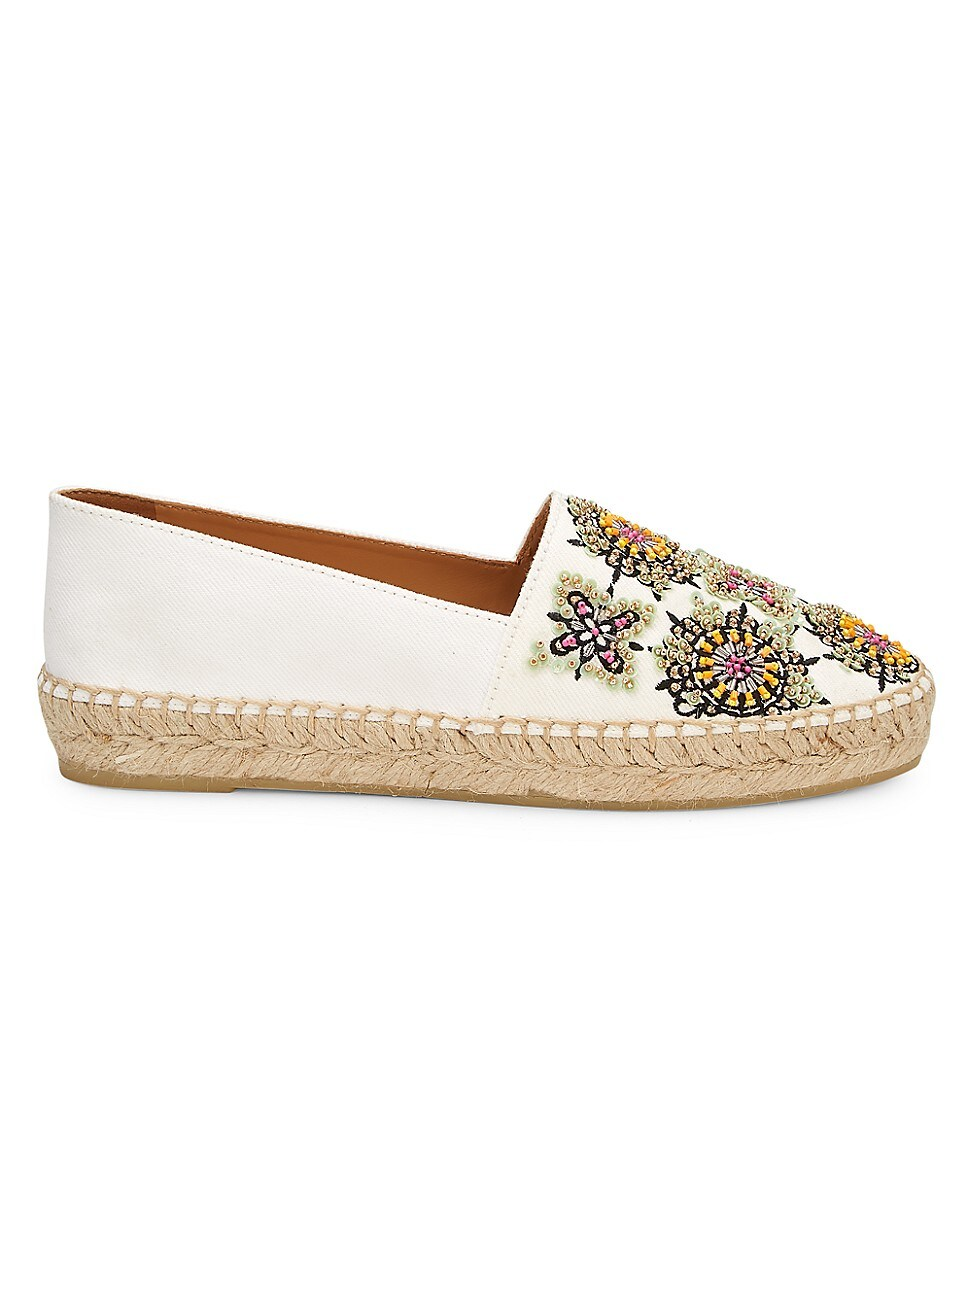 Miu Miu WOMEN'S EMBROIDERED CANVAS ESPADRILLES